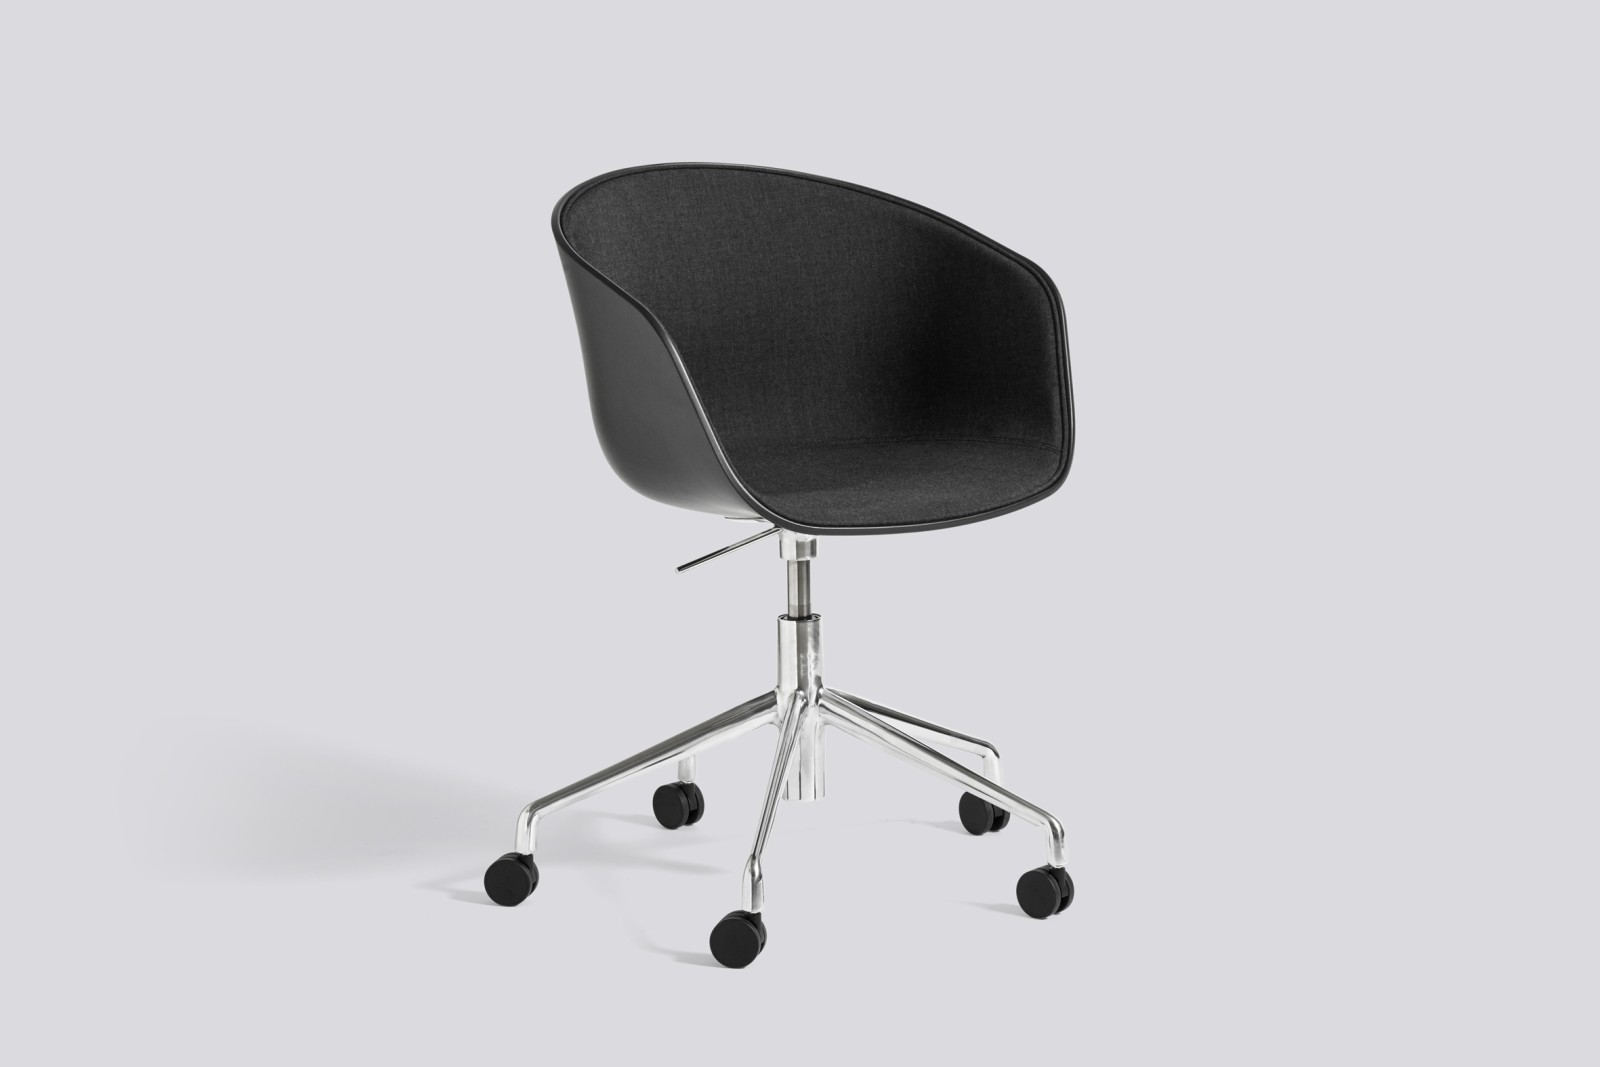 About A Chair AAC52 with front upholstery Surface by Hay 120, Black, White Powder Coated Steel